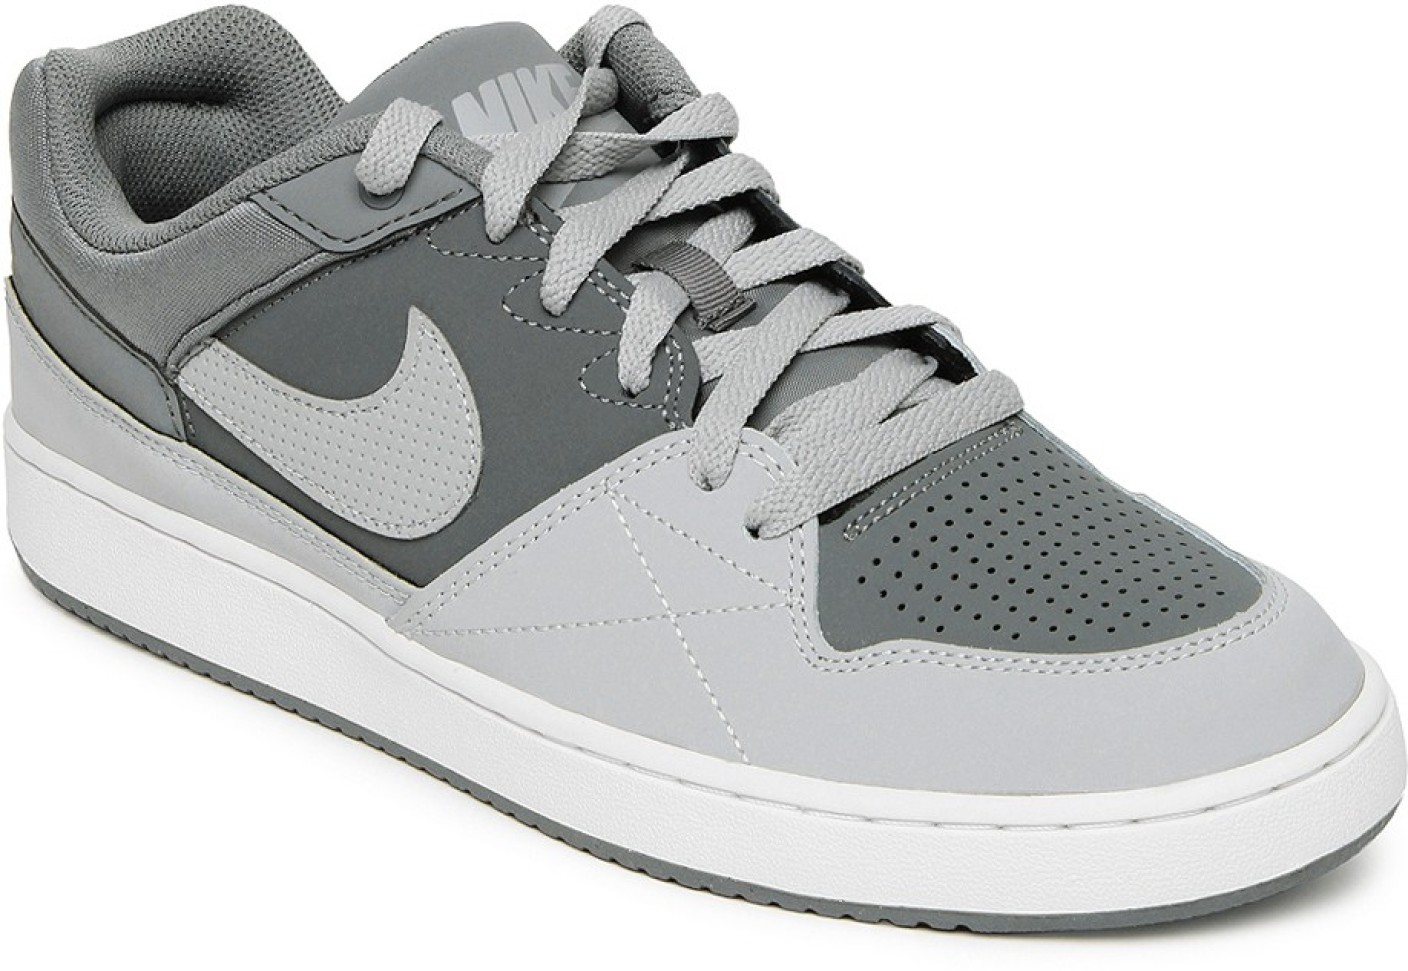 Nike Priority Low Casual Shoes For Men - Buy COOL GREY ...